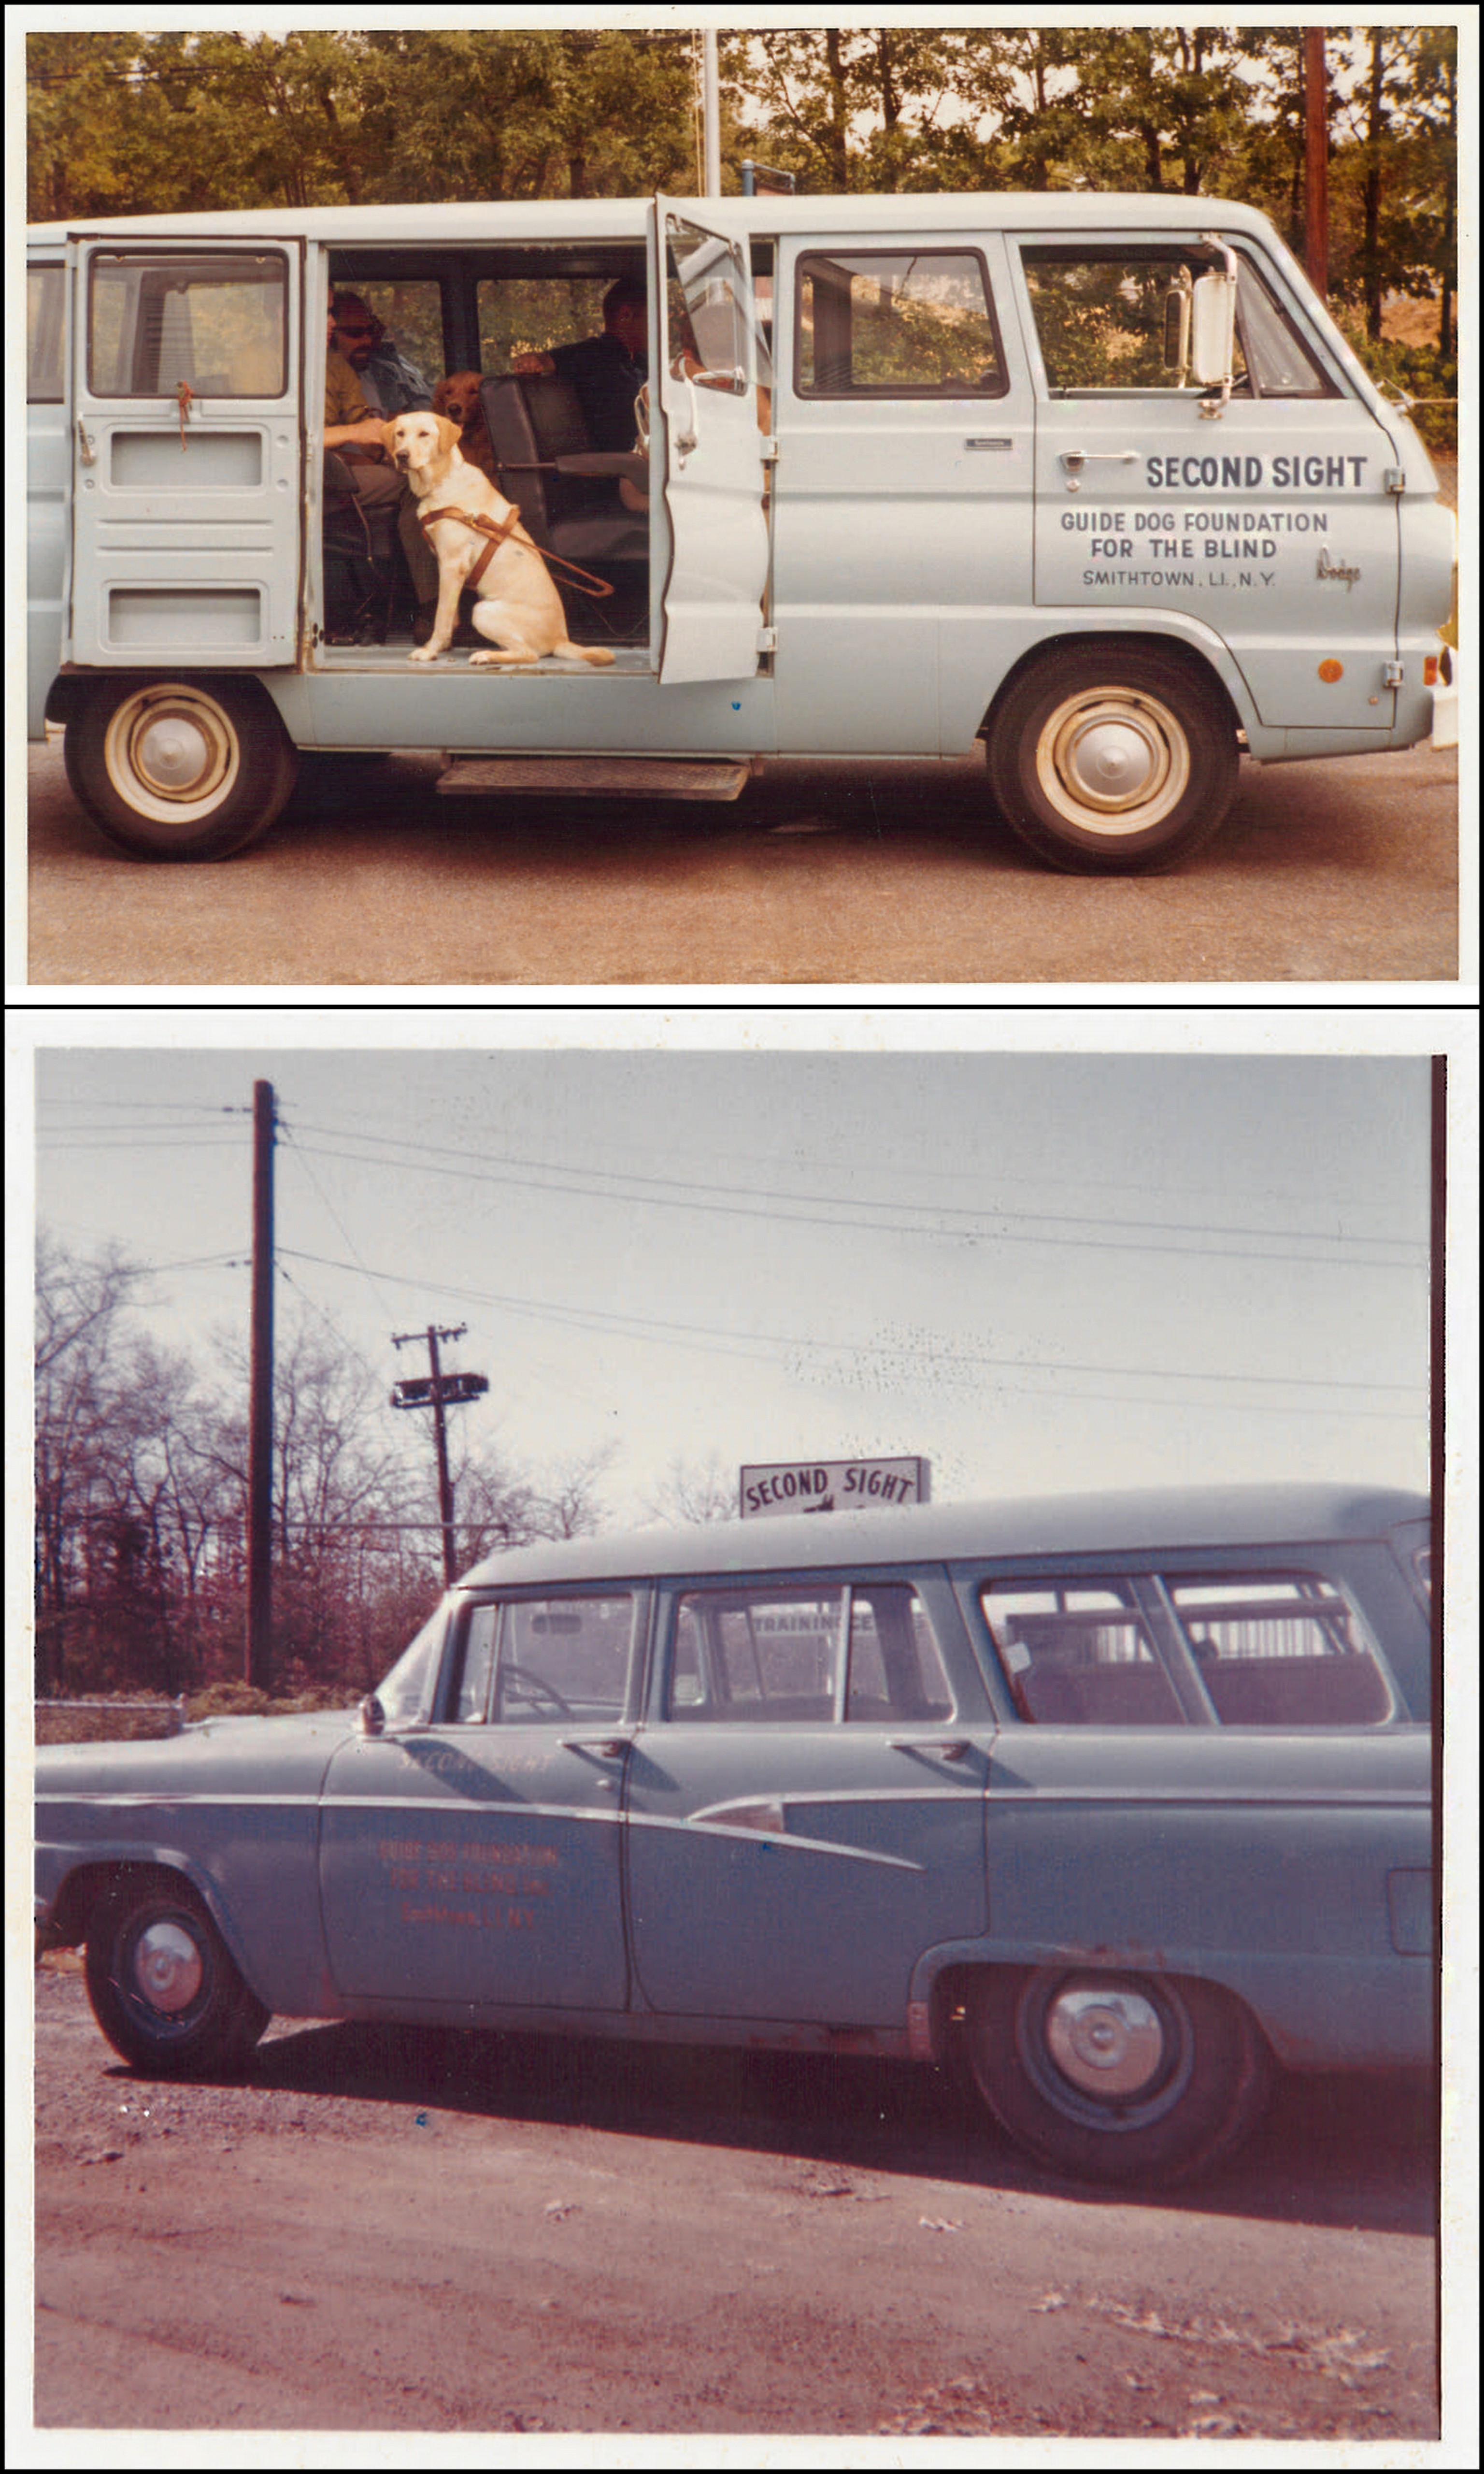 Two photos show Foundation vehicles. The top one is a powder blue van from the 60's, the side cargo doors are open and inside sits a yellow Lab in harness. The photo below that shows a parked 1950's station wagon. Both vehicles say 'Second Sight - Guide Dog Foundation' on the front doors.